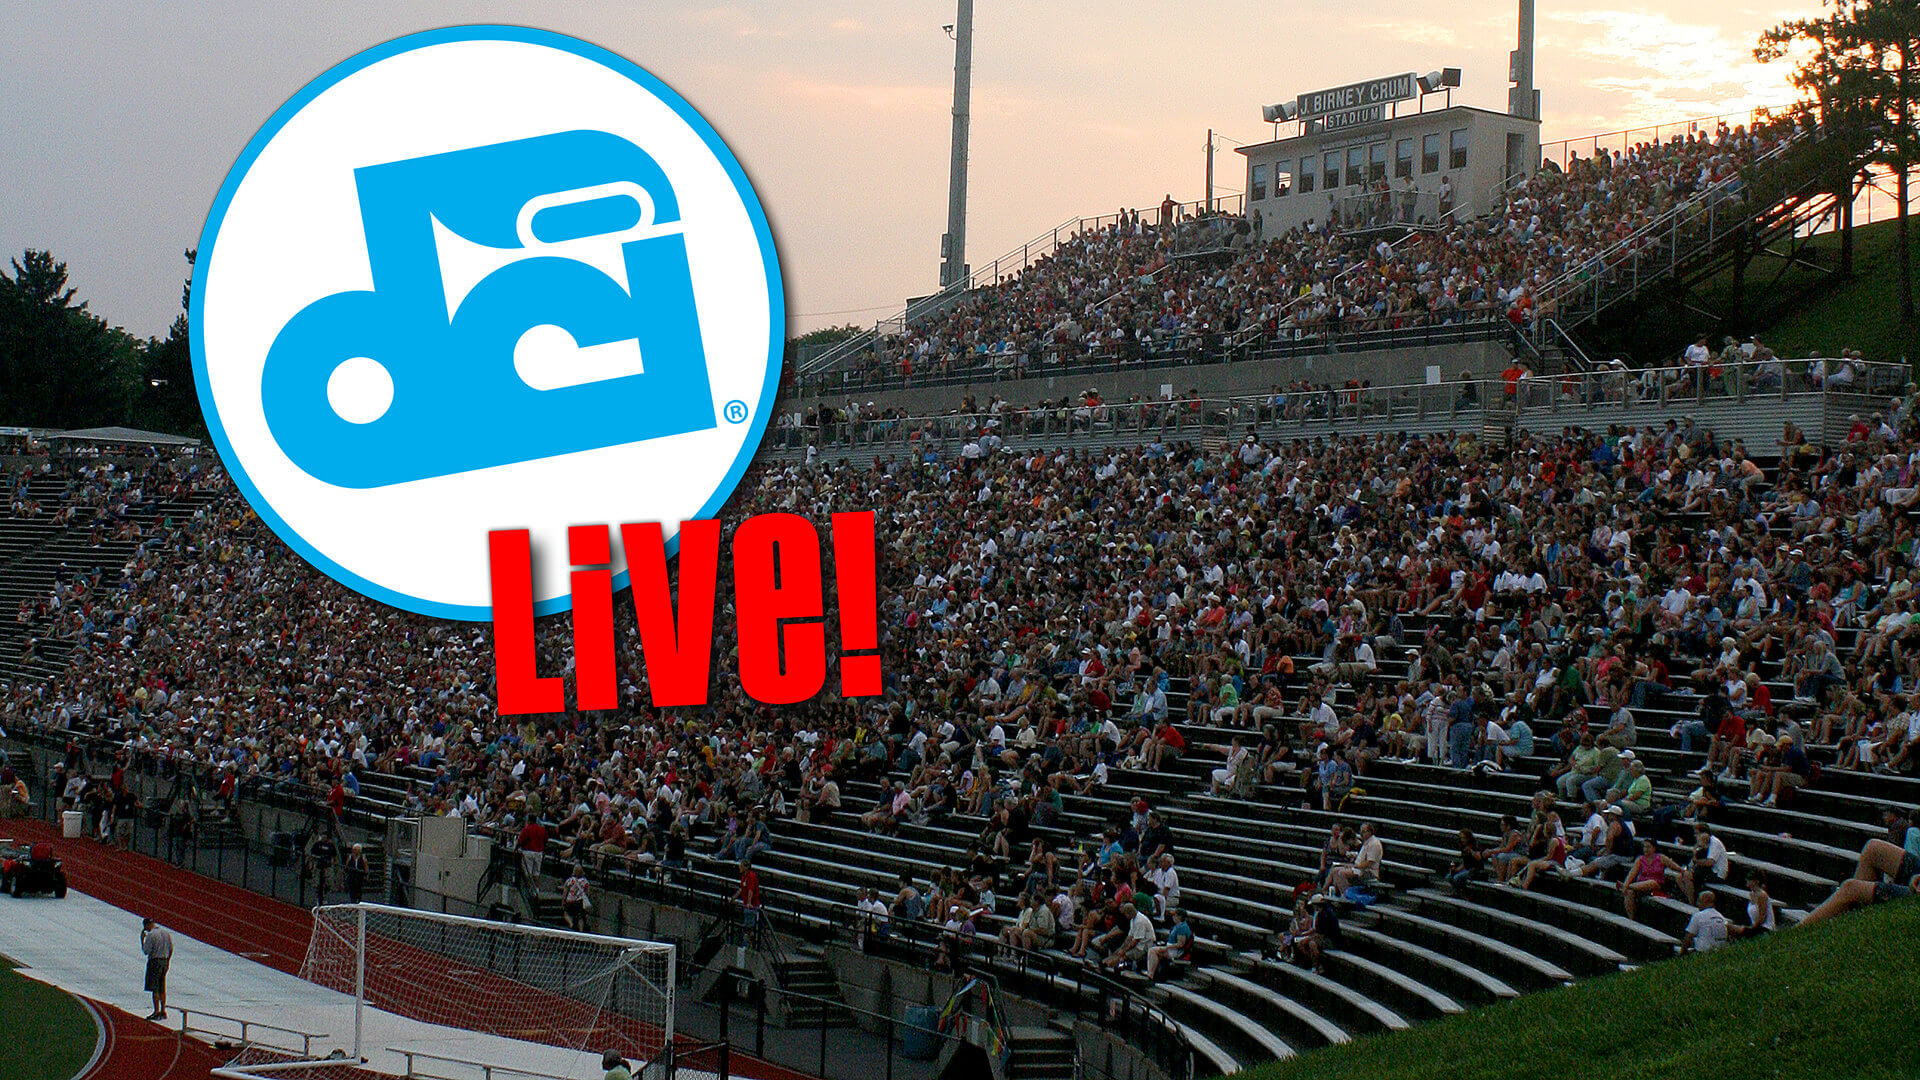 What to watch this weekend: DCI Live! from Allentown